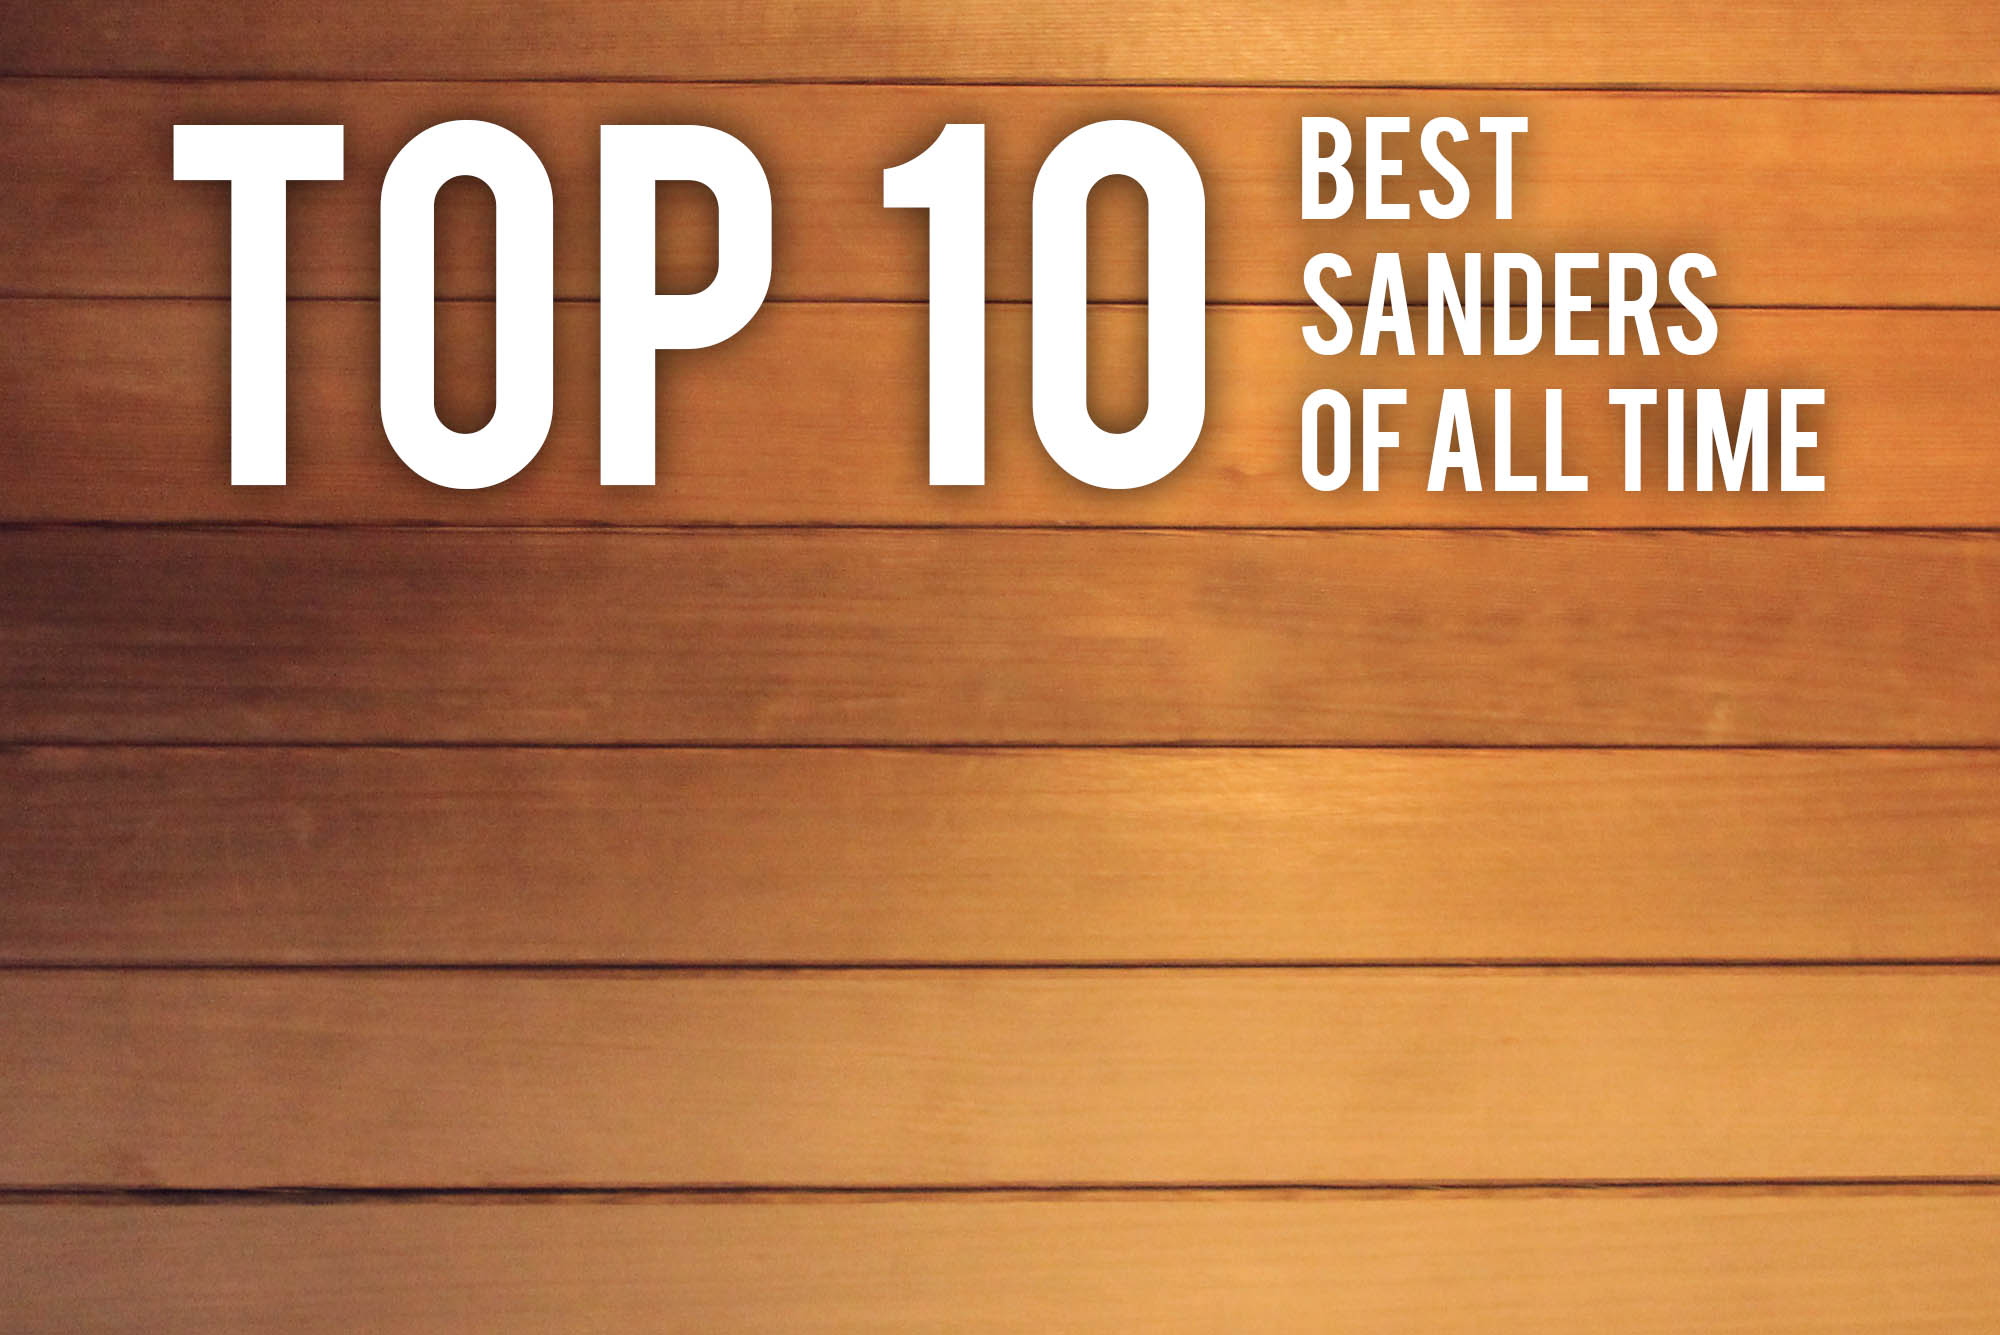 The Best Sanders of All Time - Reviewed